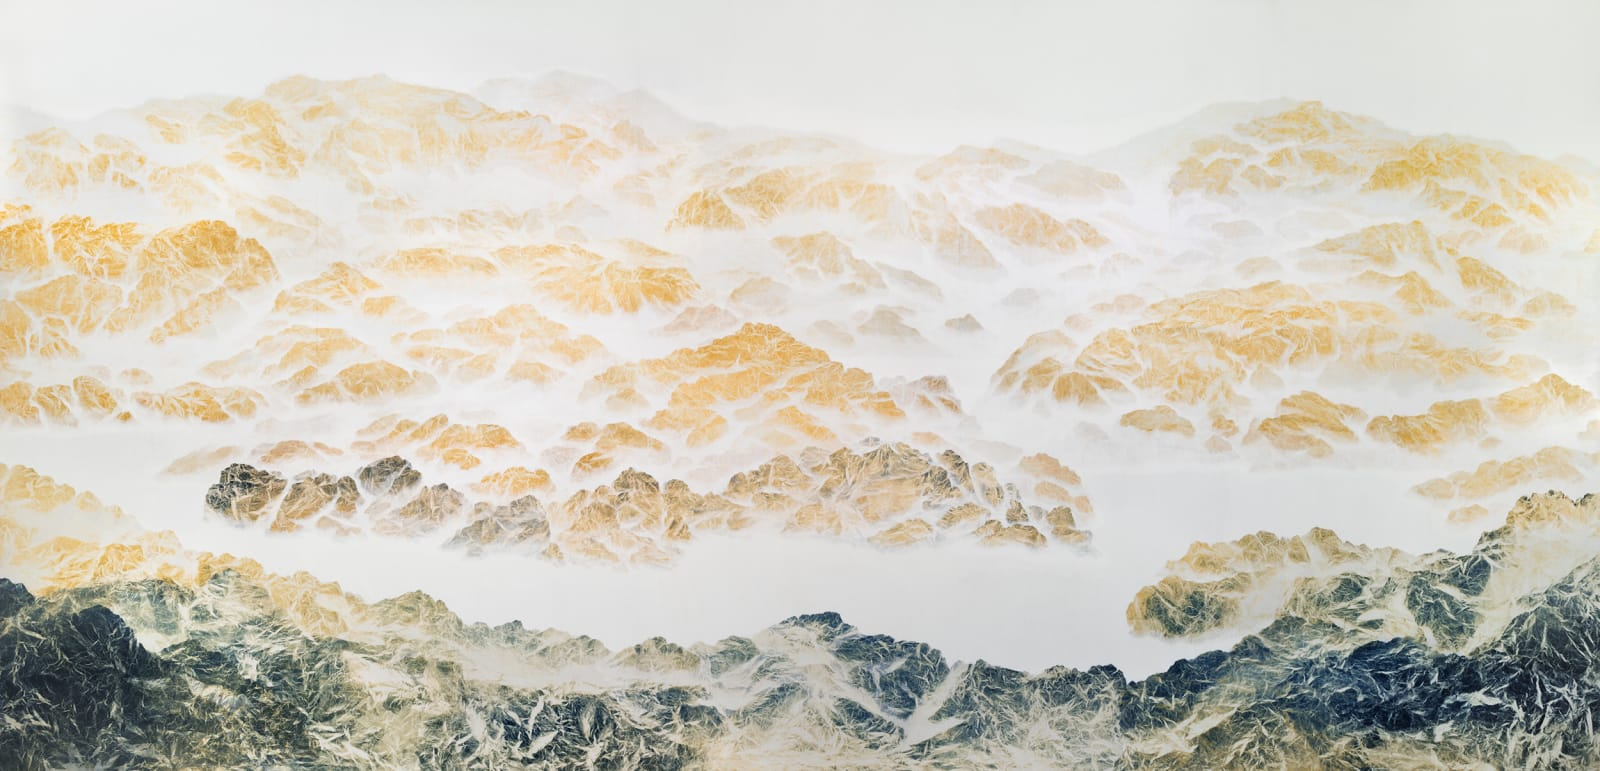 Wu Chi-Tsung 吳季璁, Cyano-Collage - A Thousand Mile of Rivers and Mountains 氰山集之千里江山圖, 2018